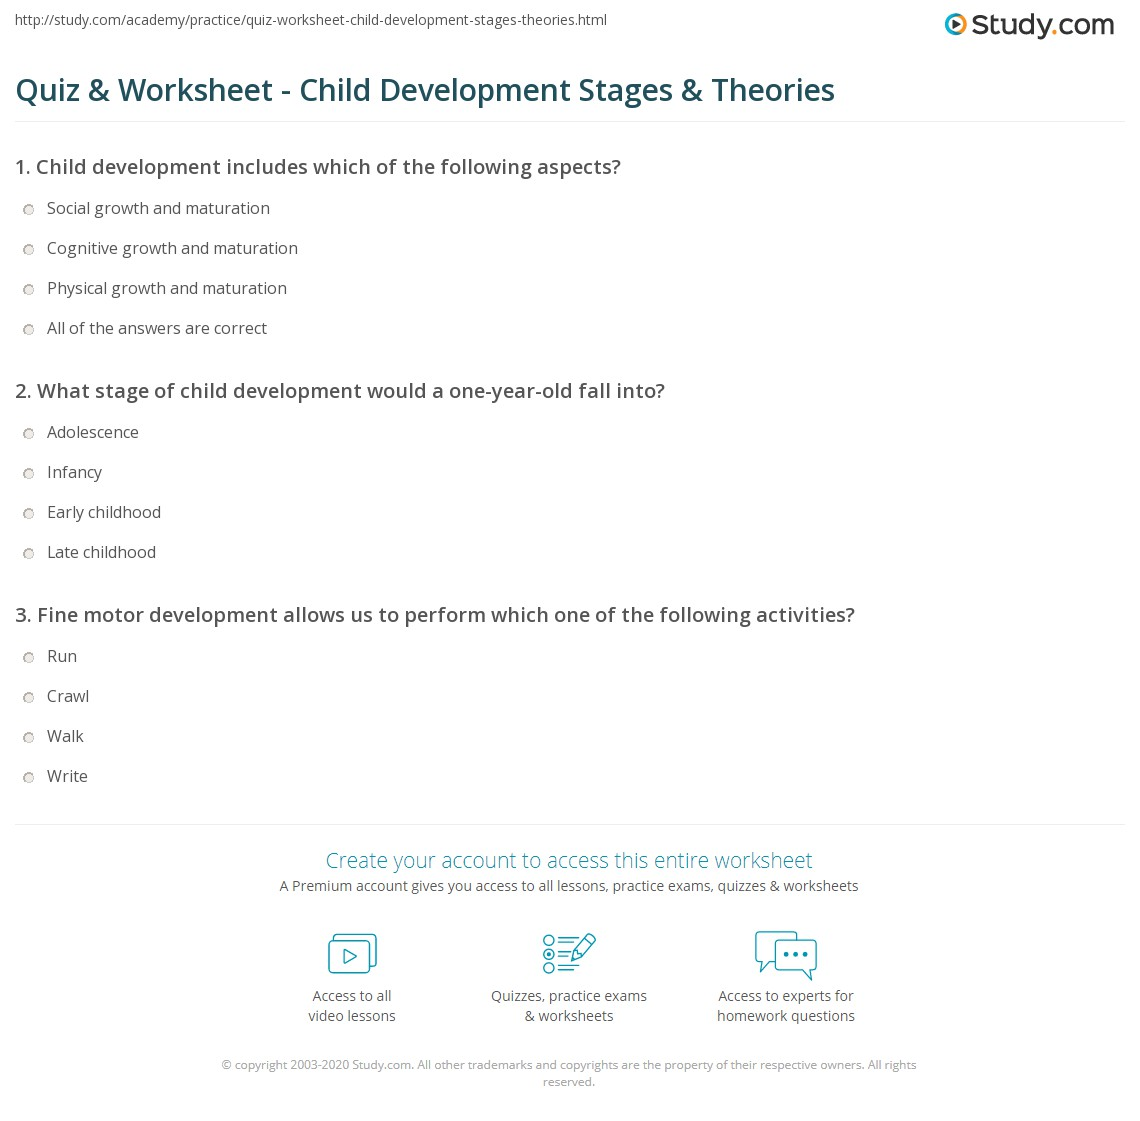 Quiz & Worksheet - Child Development Stages & Theories | Study.com